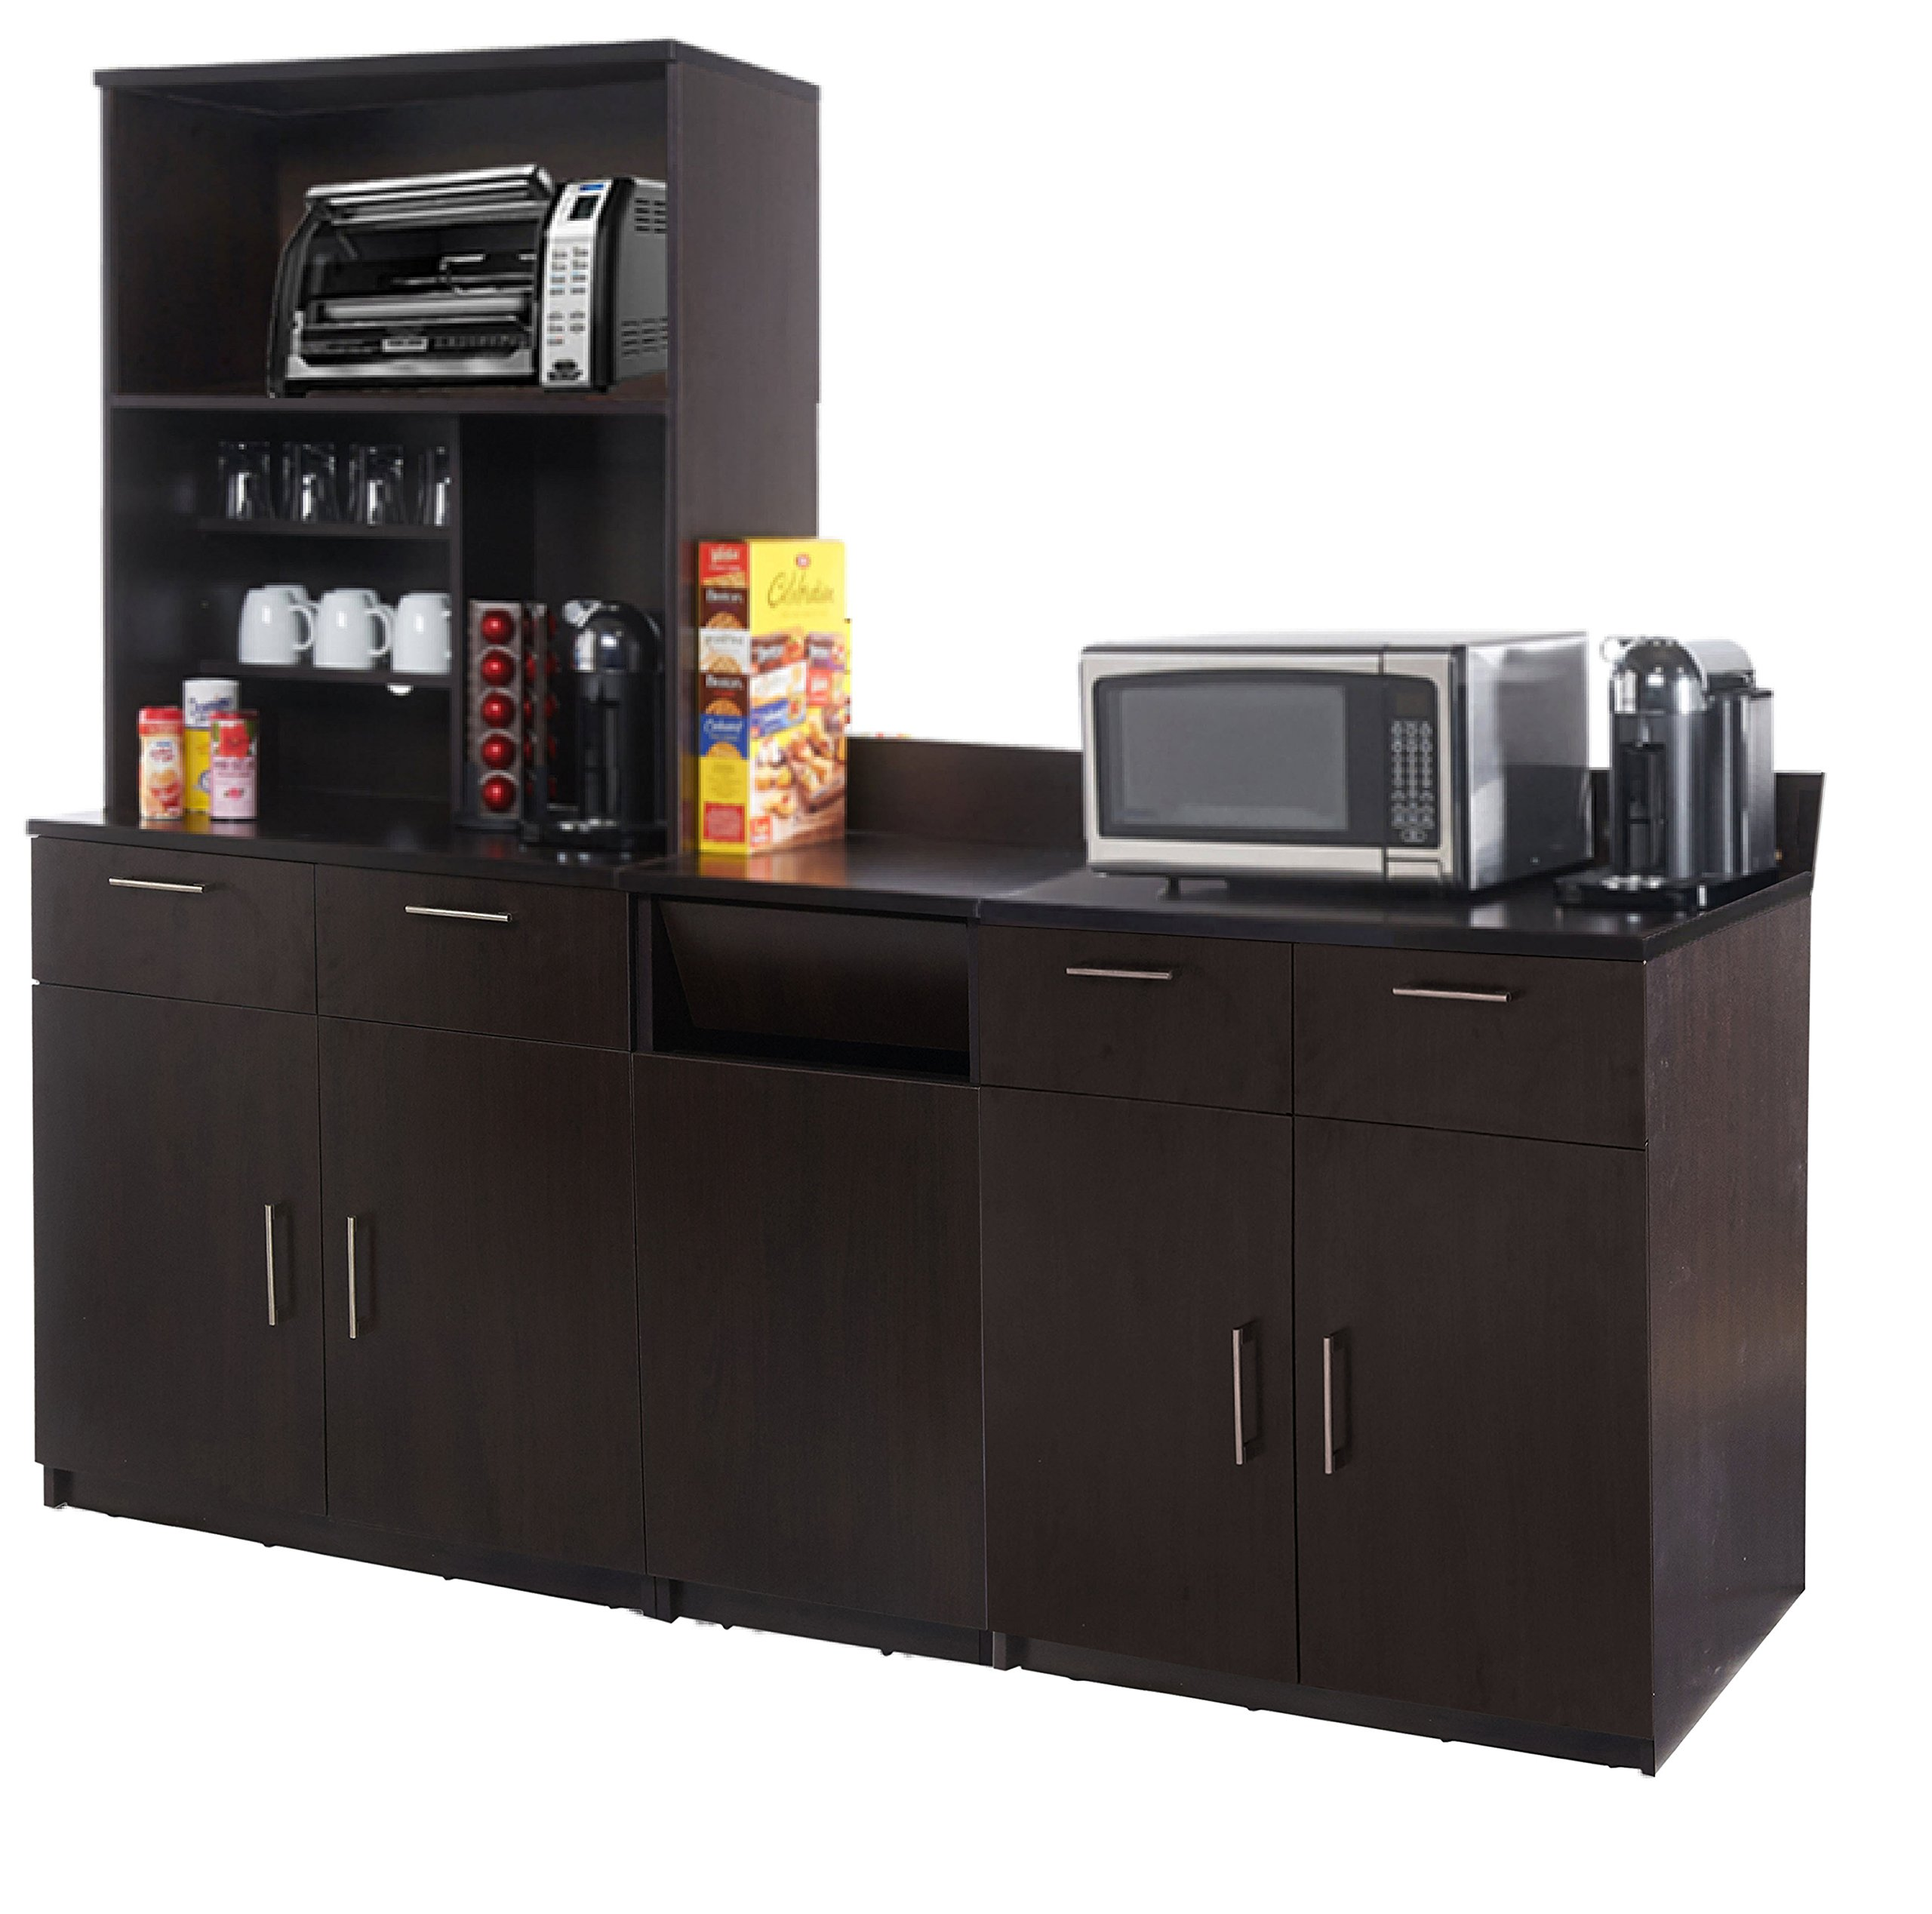 Coffee Kitchen Lunch Break Room Cabinets Model 4344 BREAKTIME 4 Piece Group Color Espresso - Factory Assembled (NOT RTA) Furniture Items ONLY.